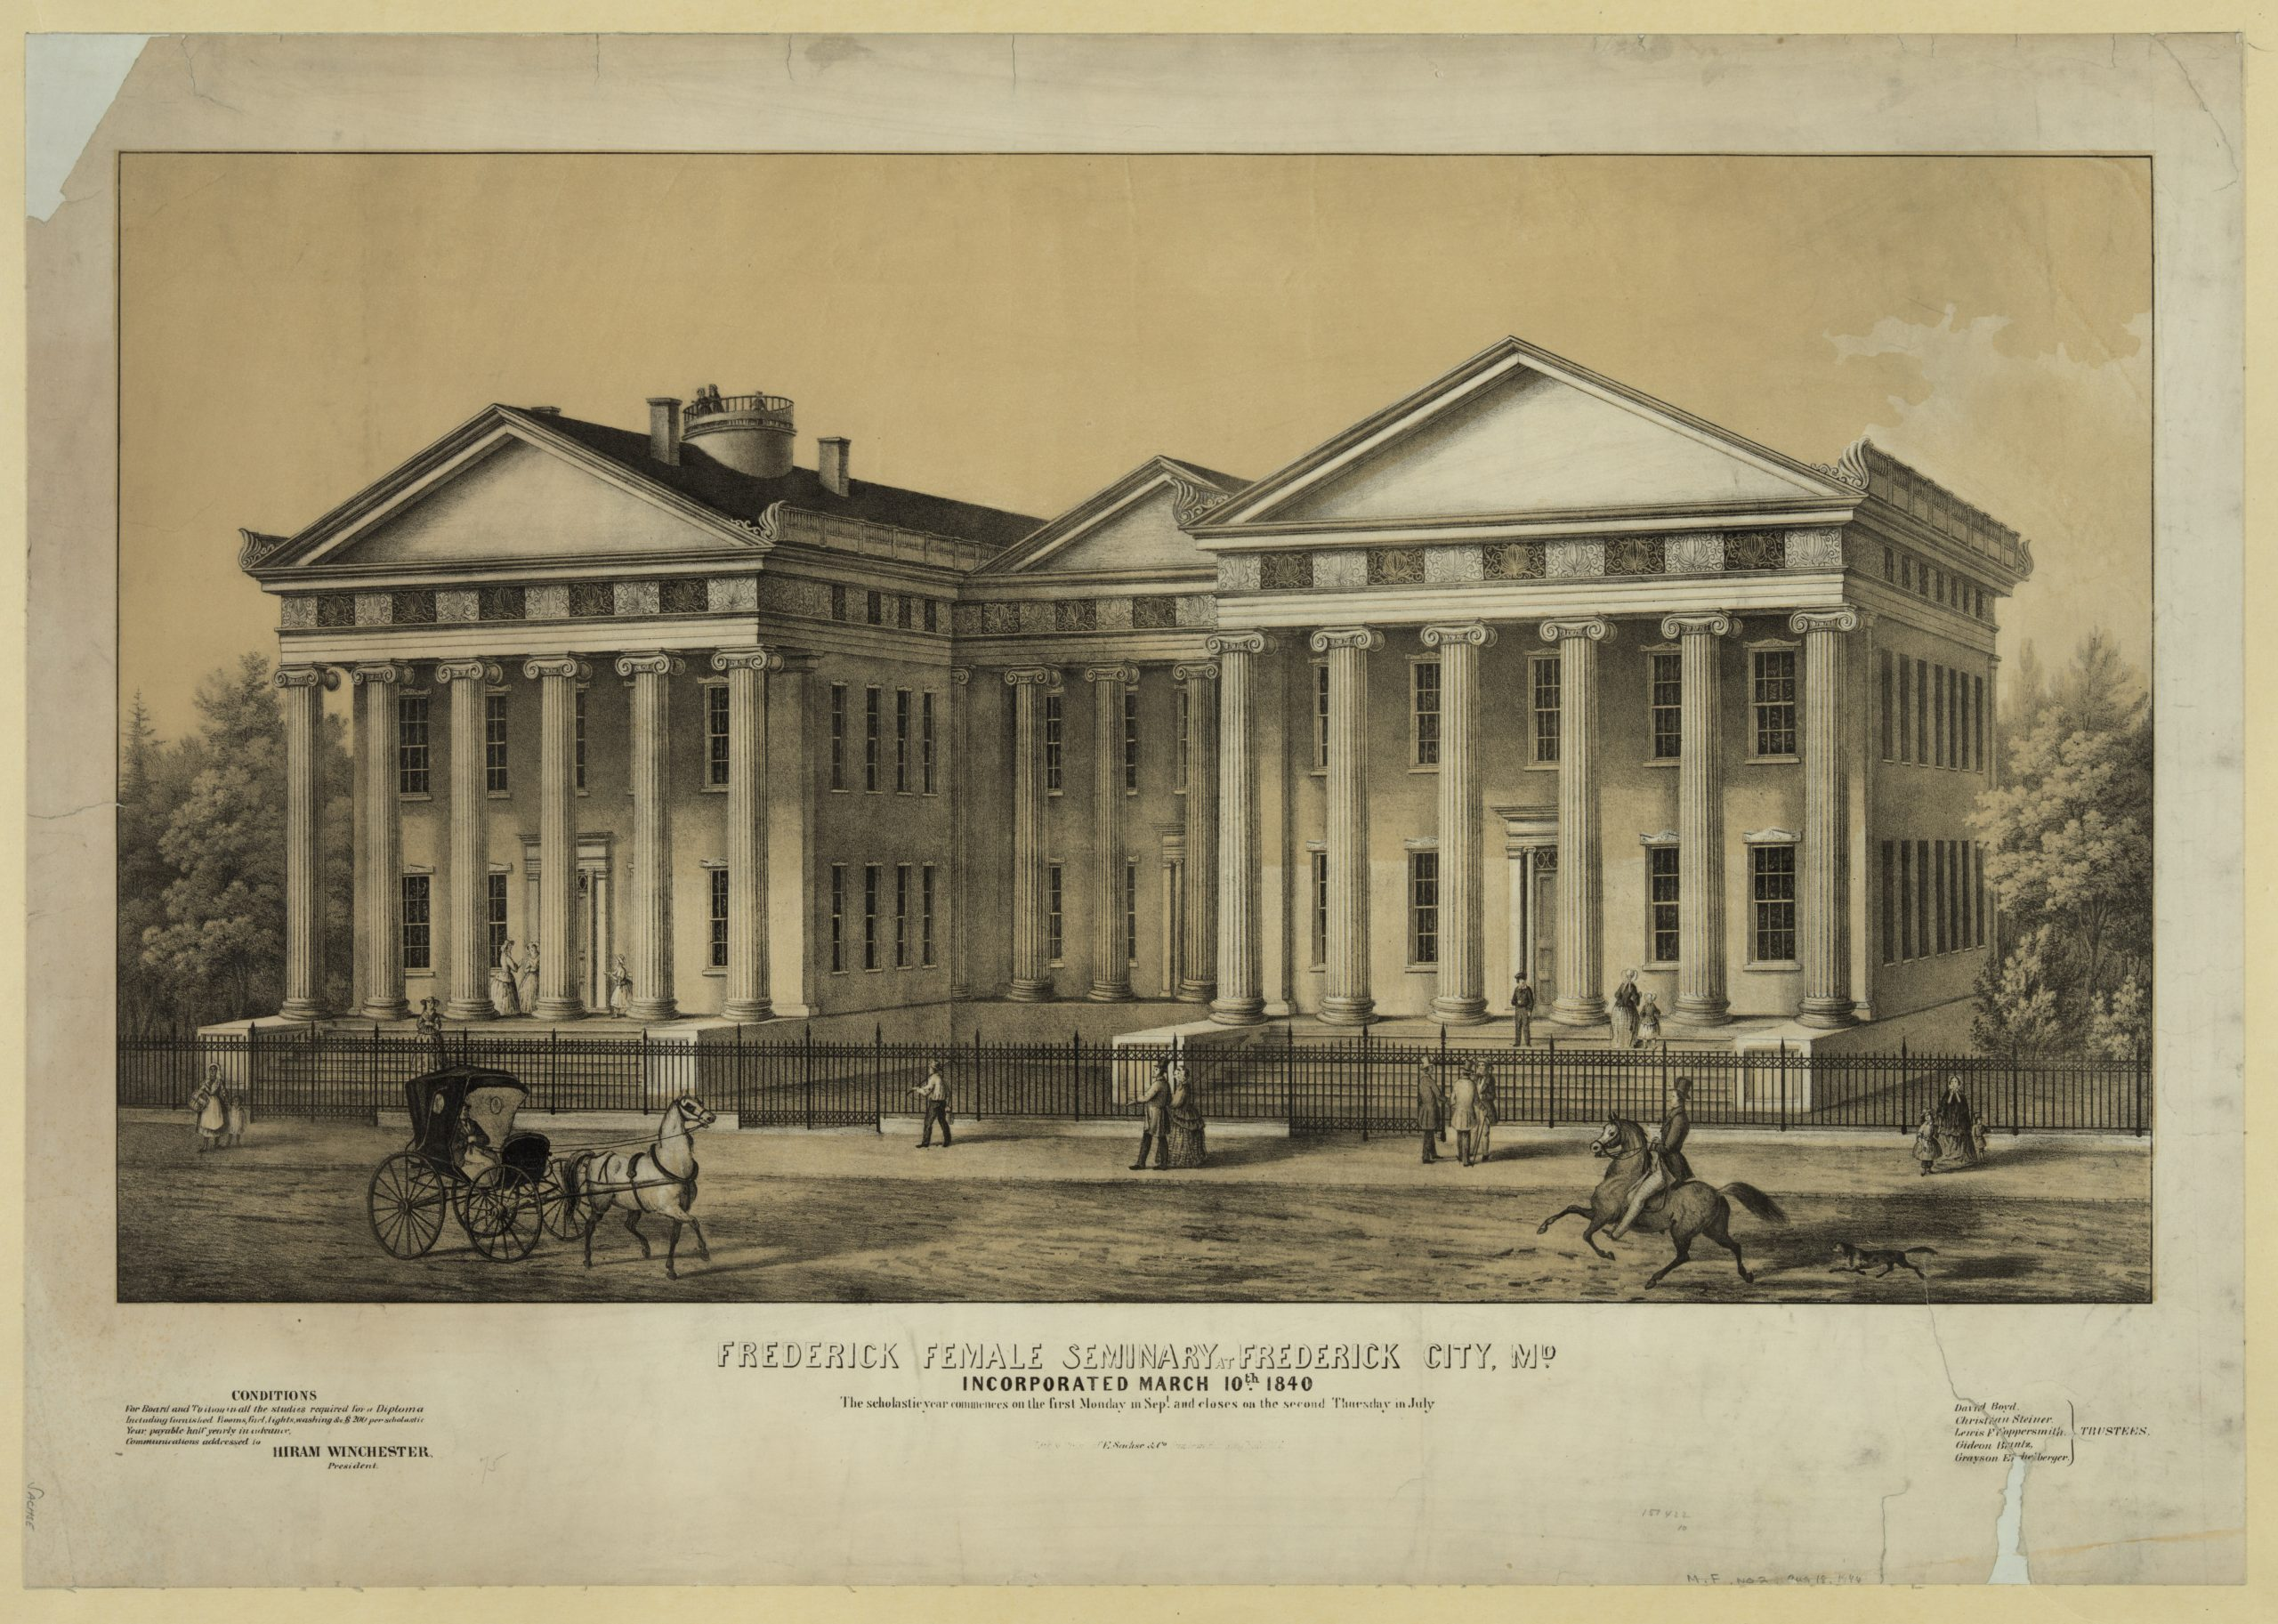 Mid-nineteenth-century engraving of a grand building in the Greek revival style, with two gables at the street, each supported by six Ionic columns, two stories tall; a central recessed gable with columns connects them. Street scene with carriages in foreground.